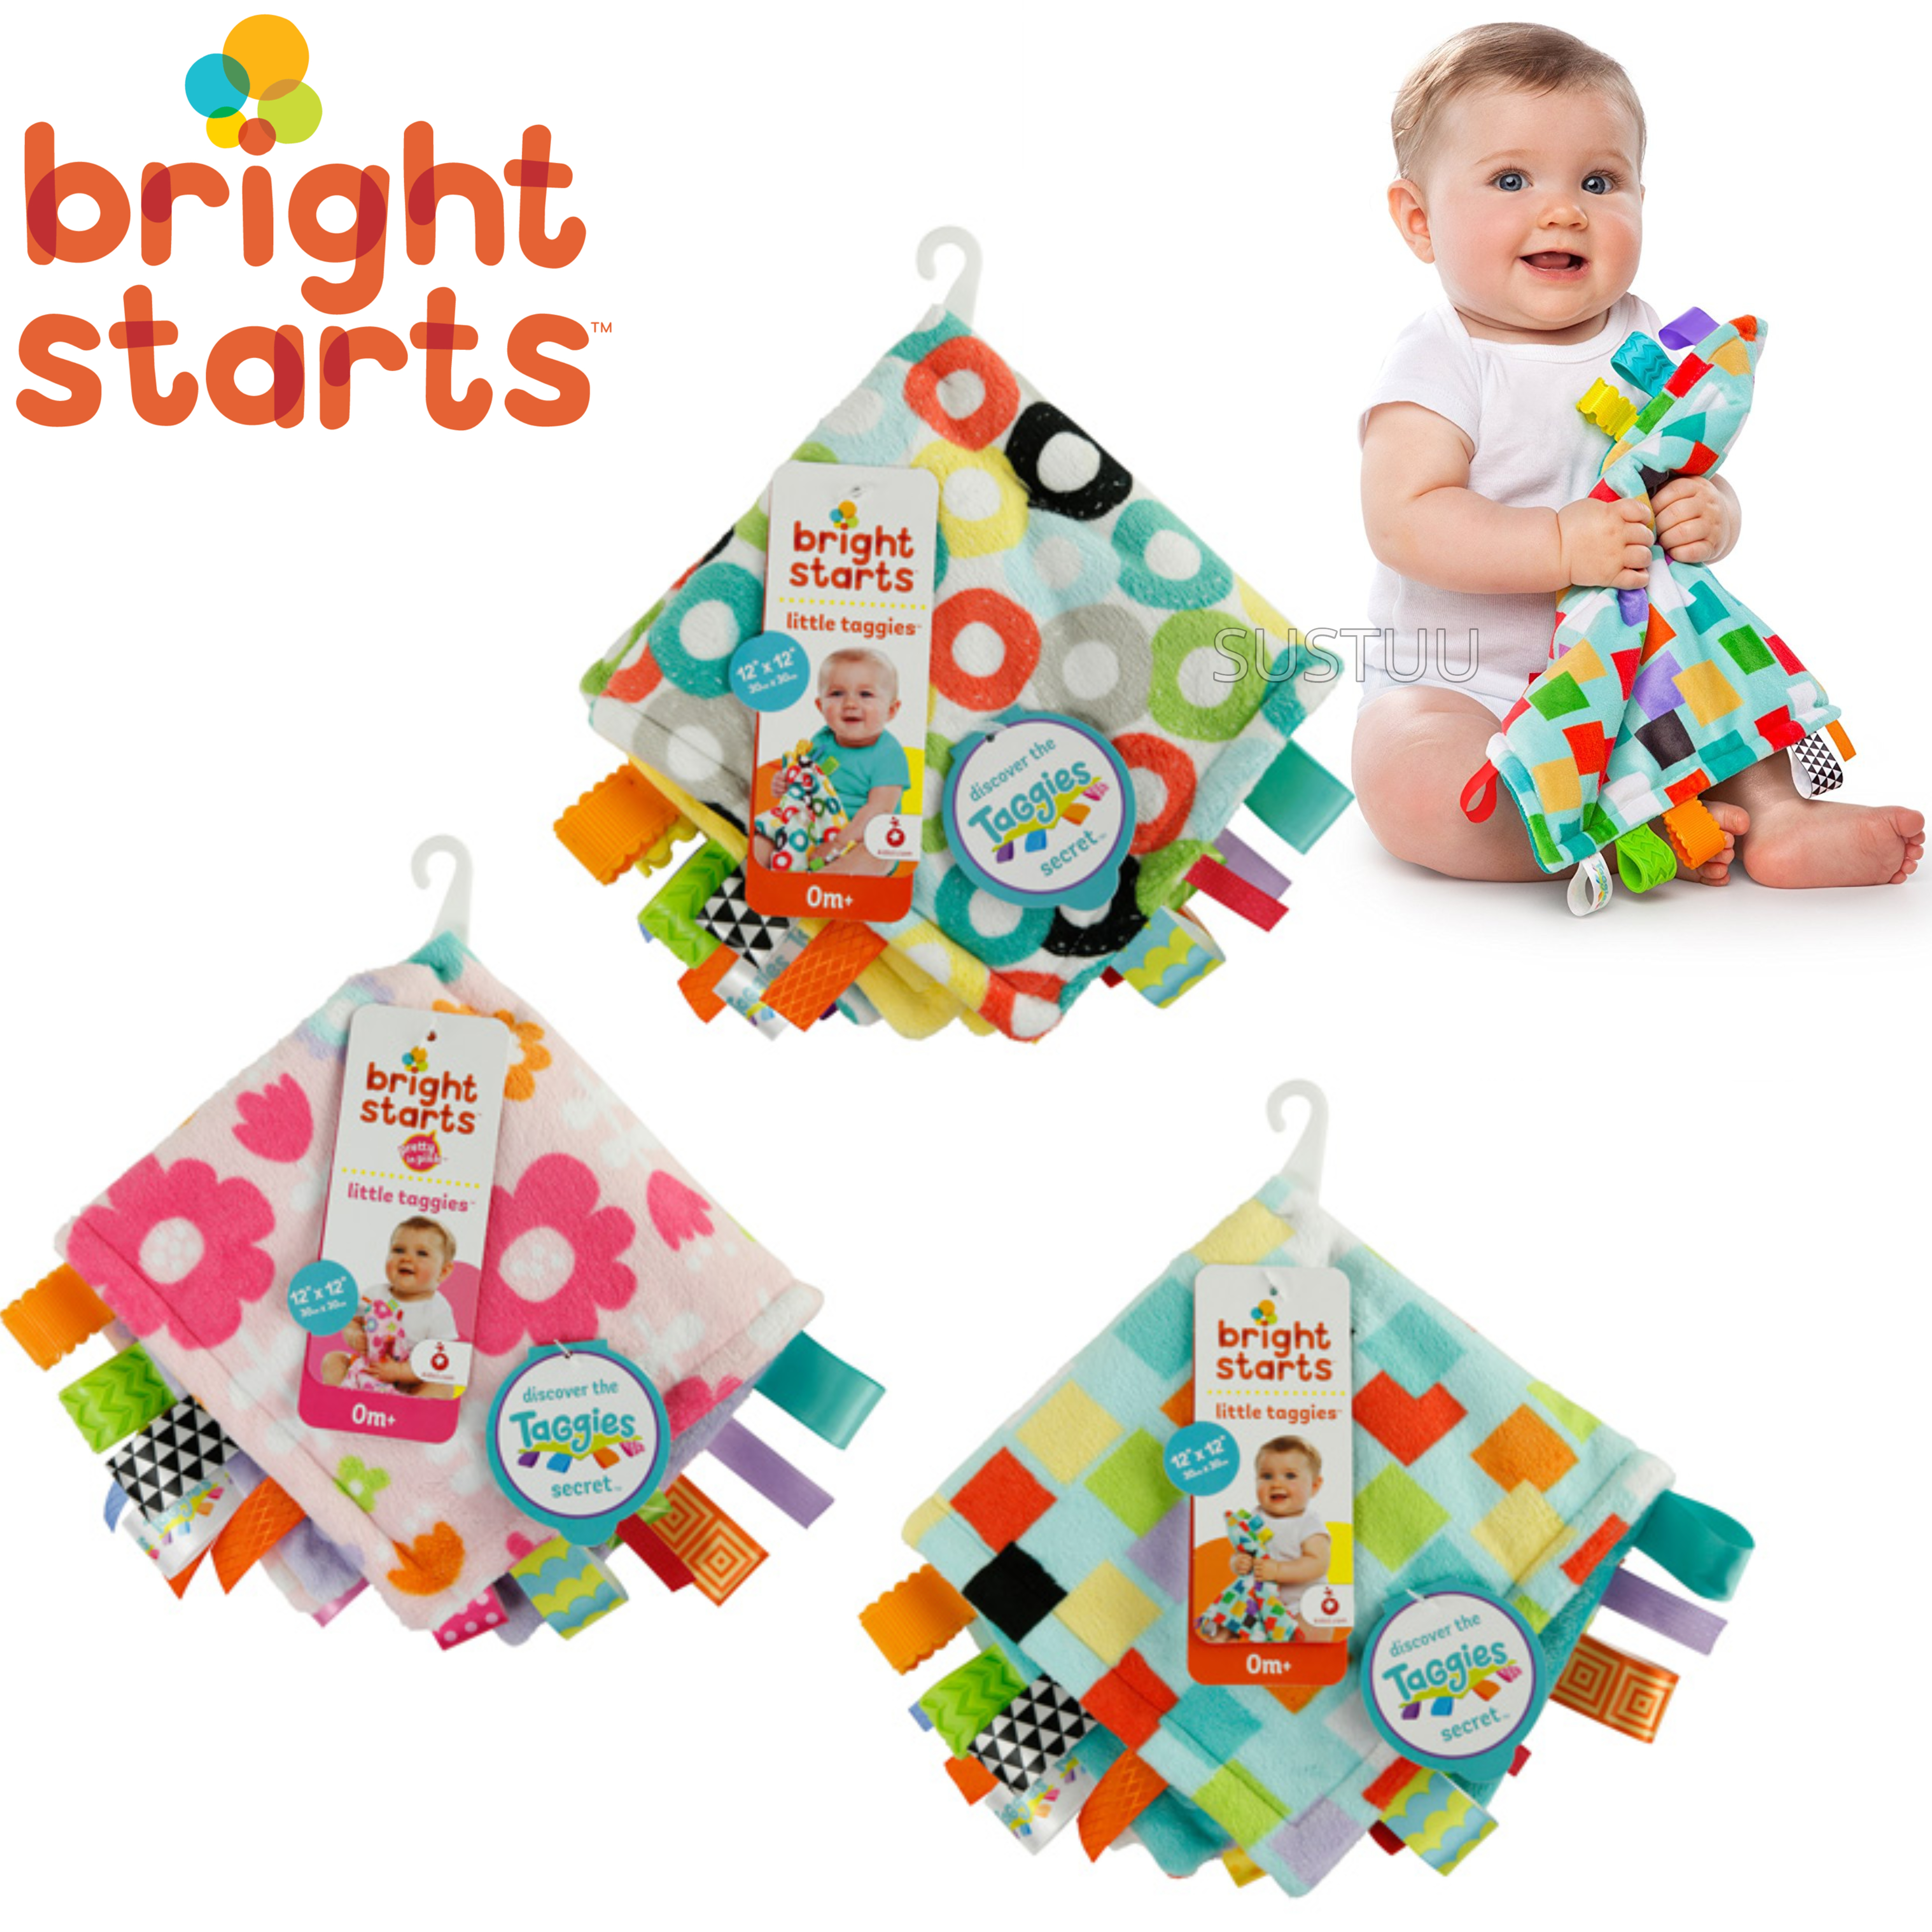 Bright Starts Little Taggies Comfort Blanket (ASSORTMENT) | With Soft Teether Tags